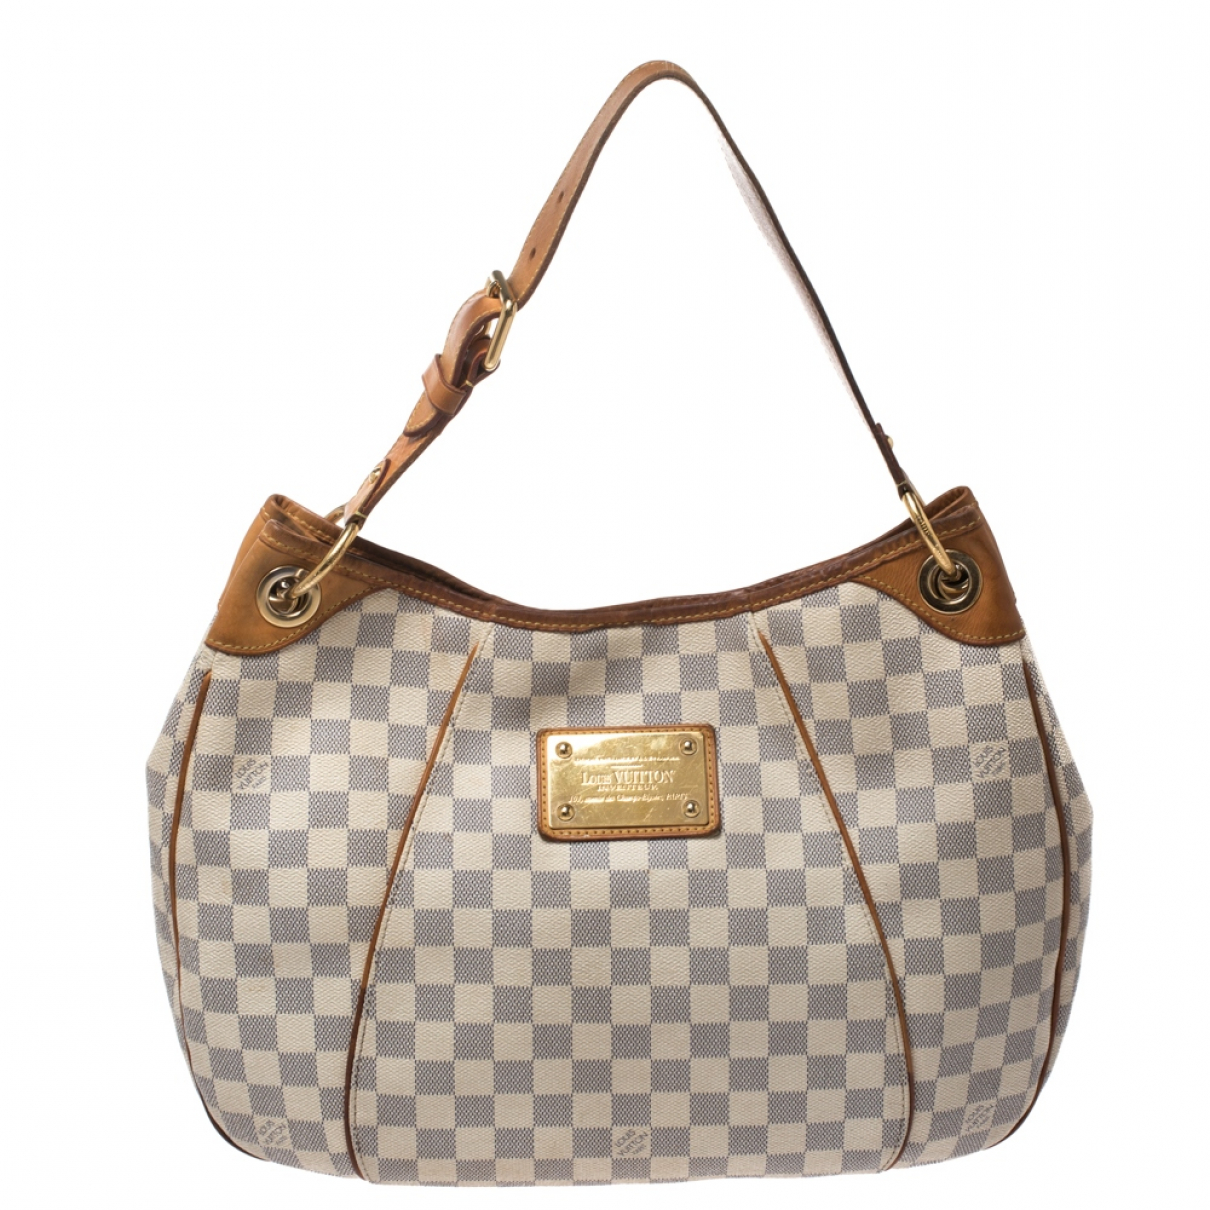 Louis Vuitton Galliera Beige Leather handbag for Women N